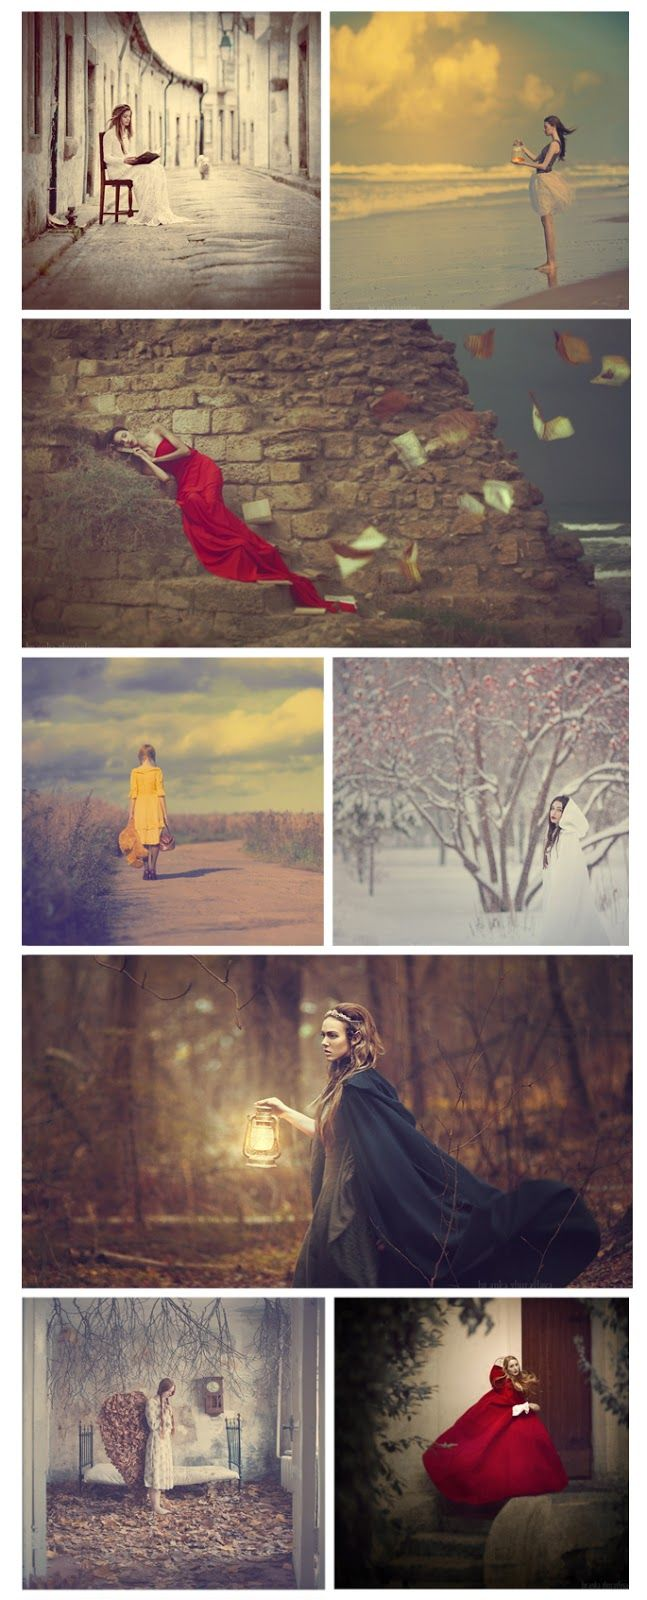 Anka Zhuravleva. What I like to call Fairy Tale Photo Shoots!